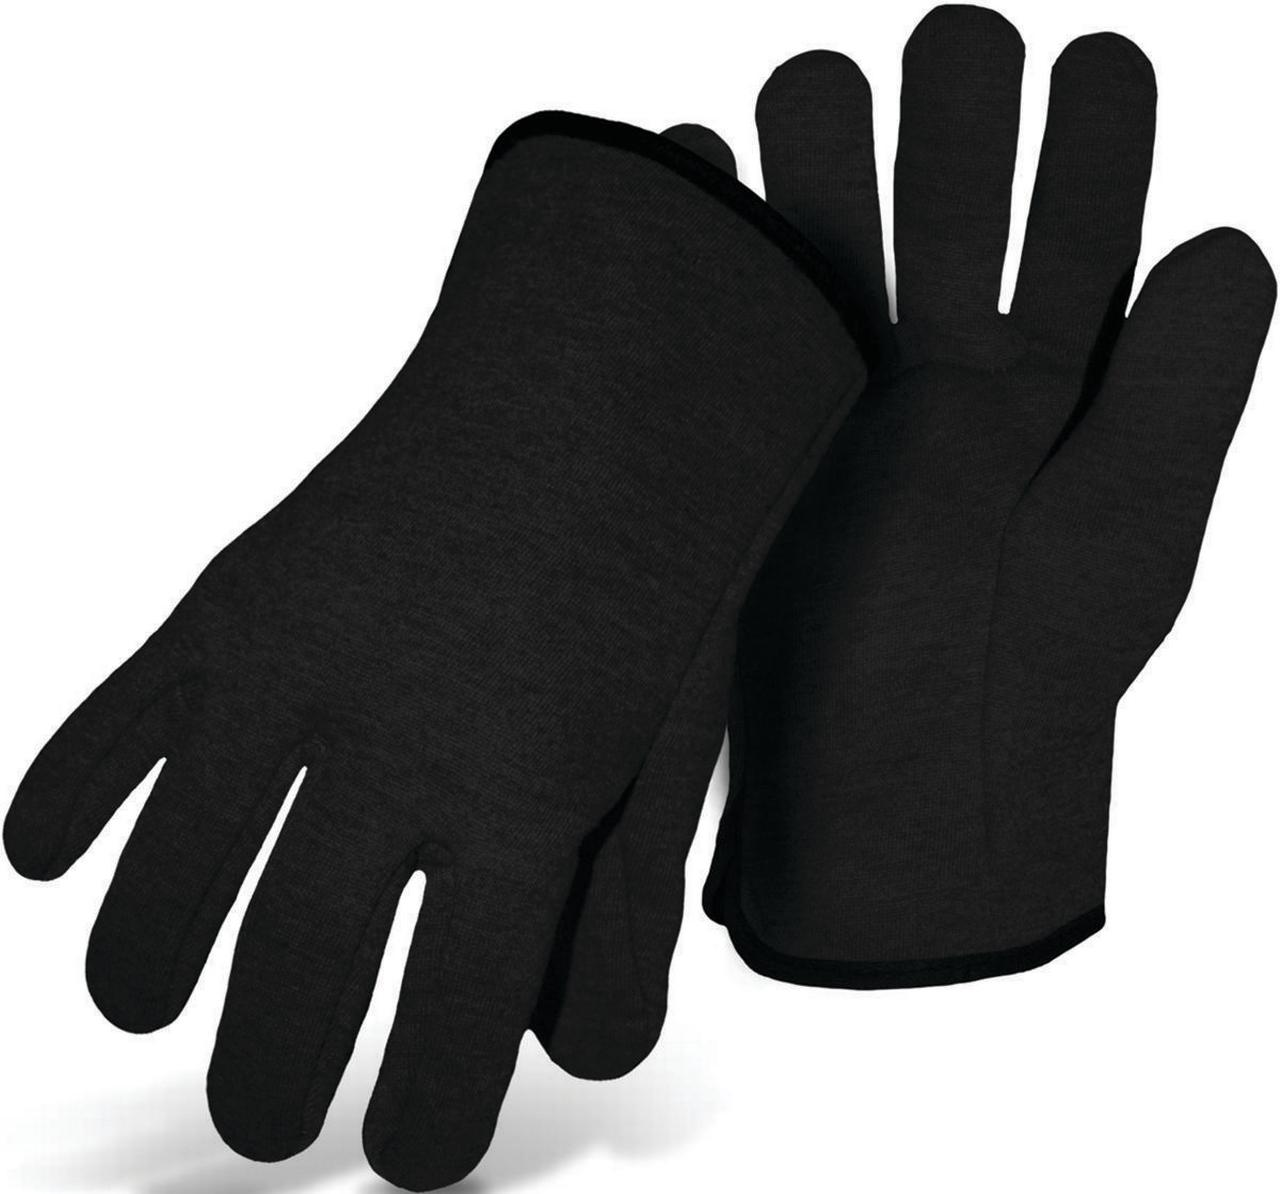 Pack of 1 Pair 2X-Large Boss 4067 Grain Leather Driver Work Gloves